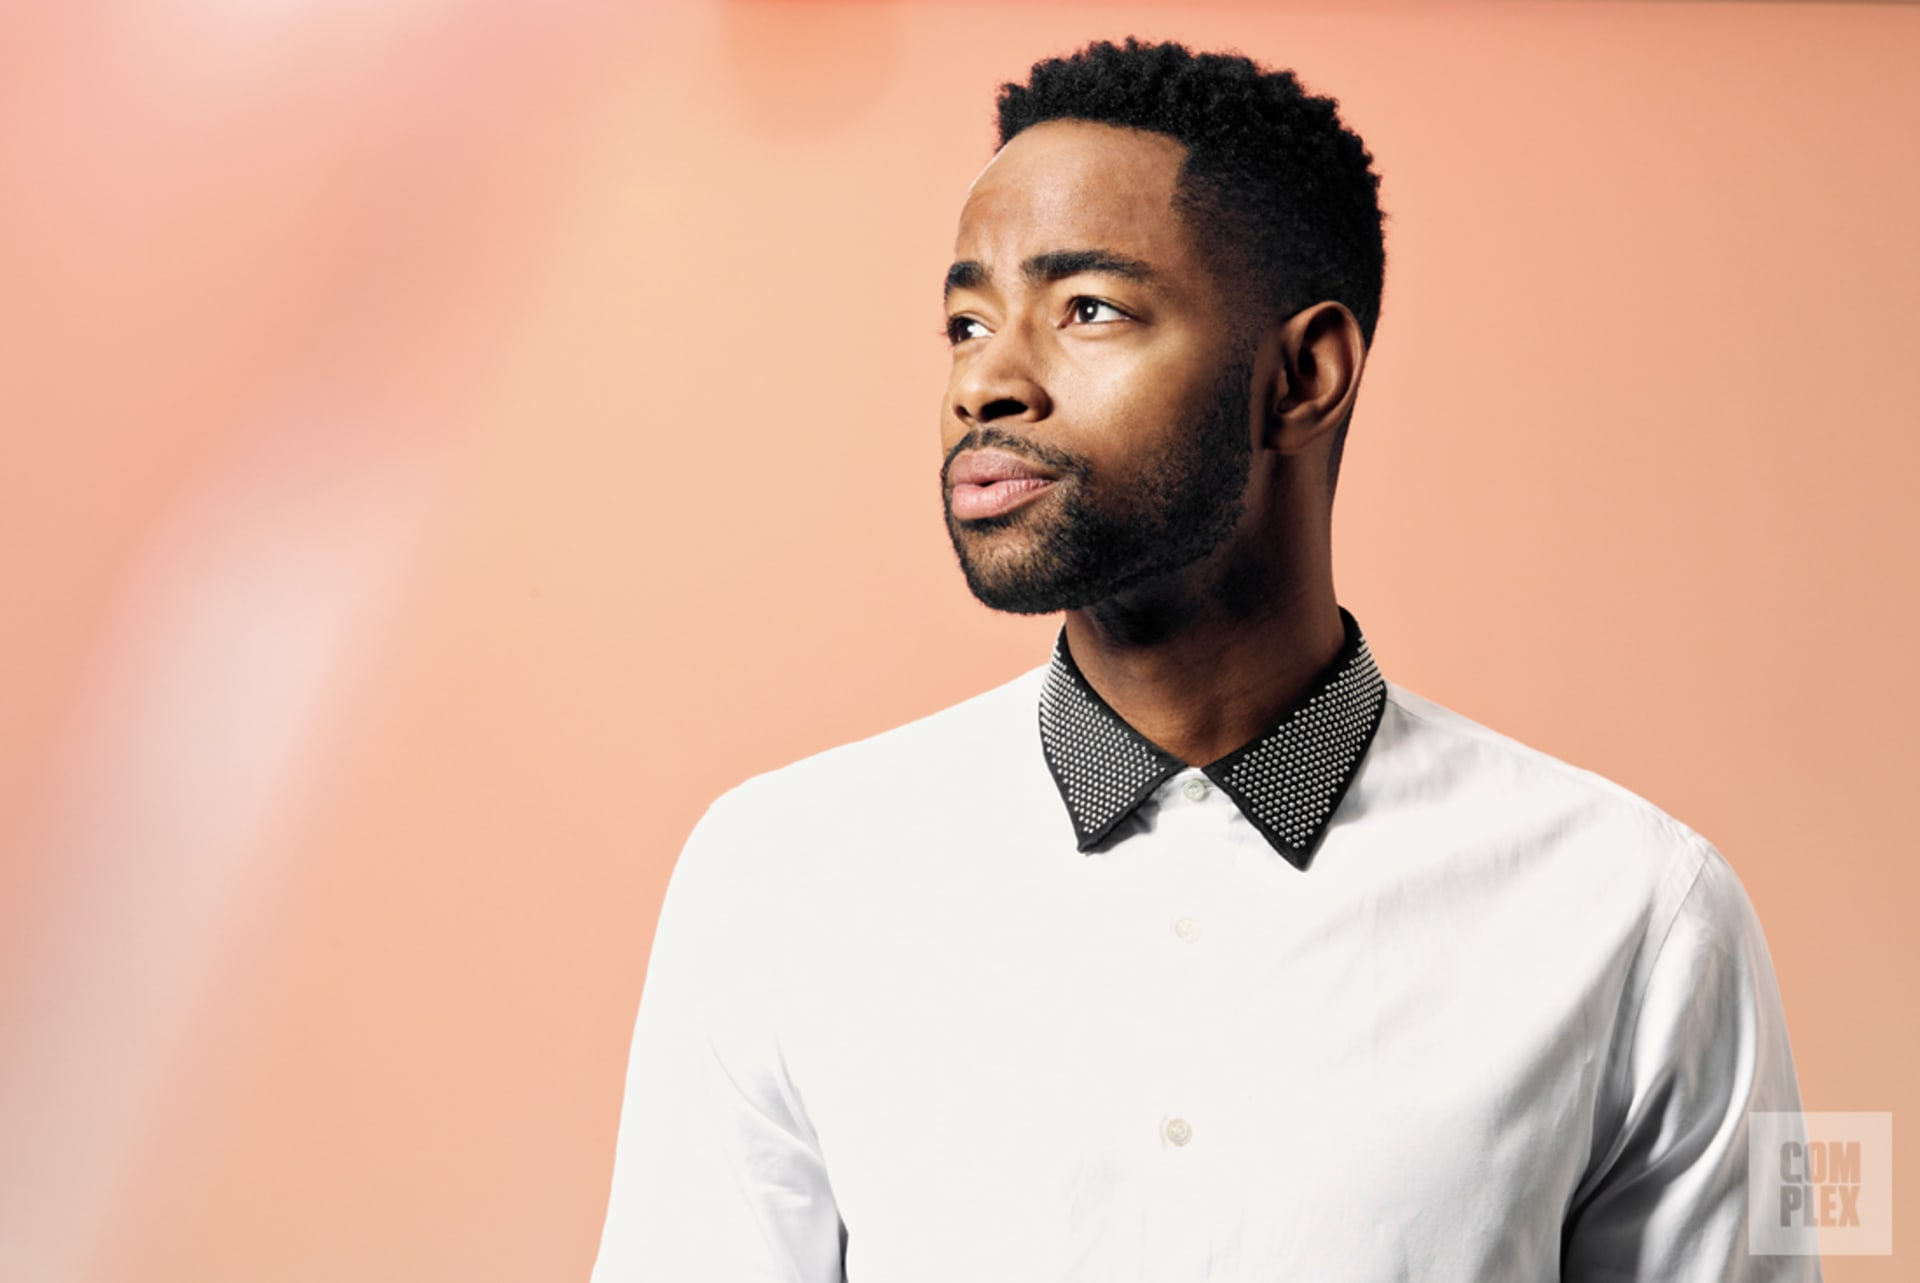 HBO 'Insecure' Star Jay Ellis Opens Up About Life After the Backshot